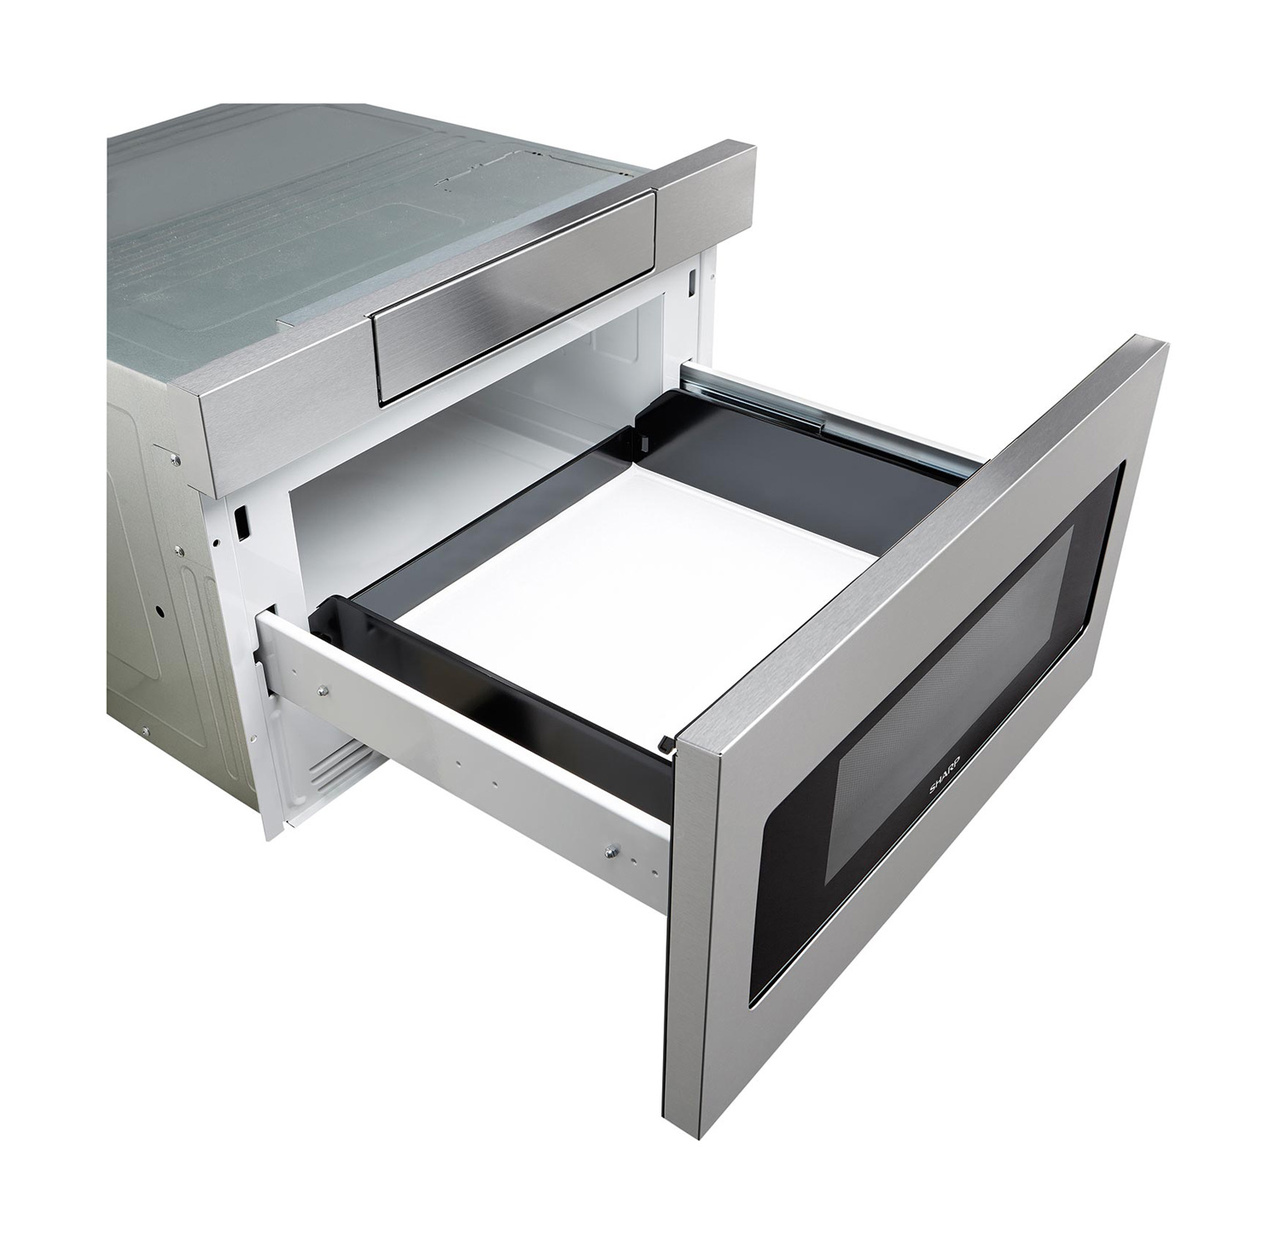 24 in. Sharp Stainless Steel Microwave Drawer (SMD2470AS) – angled right, drawer open